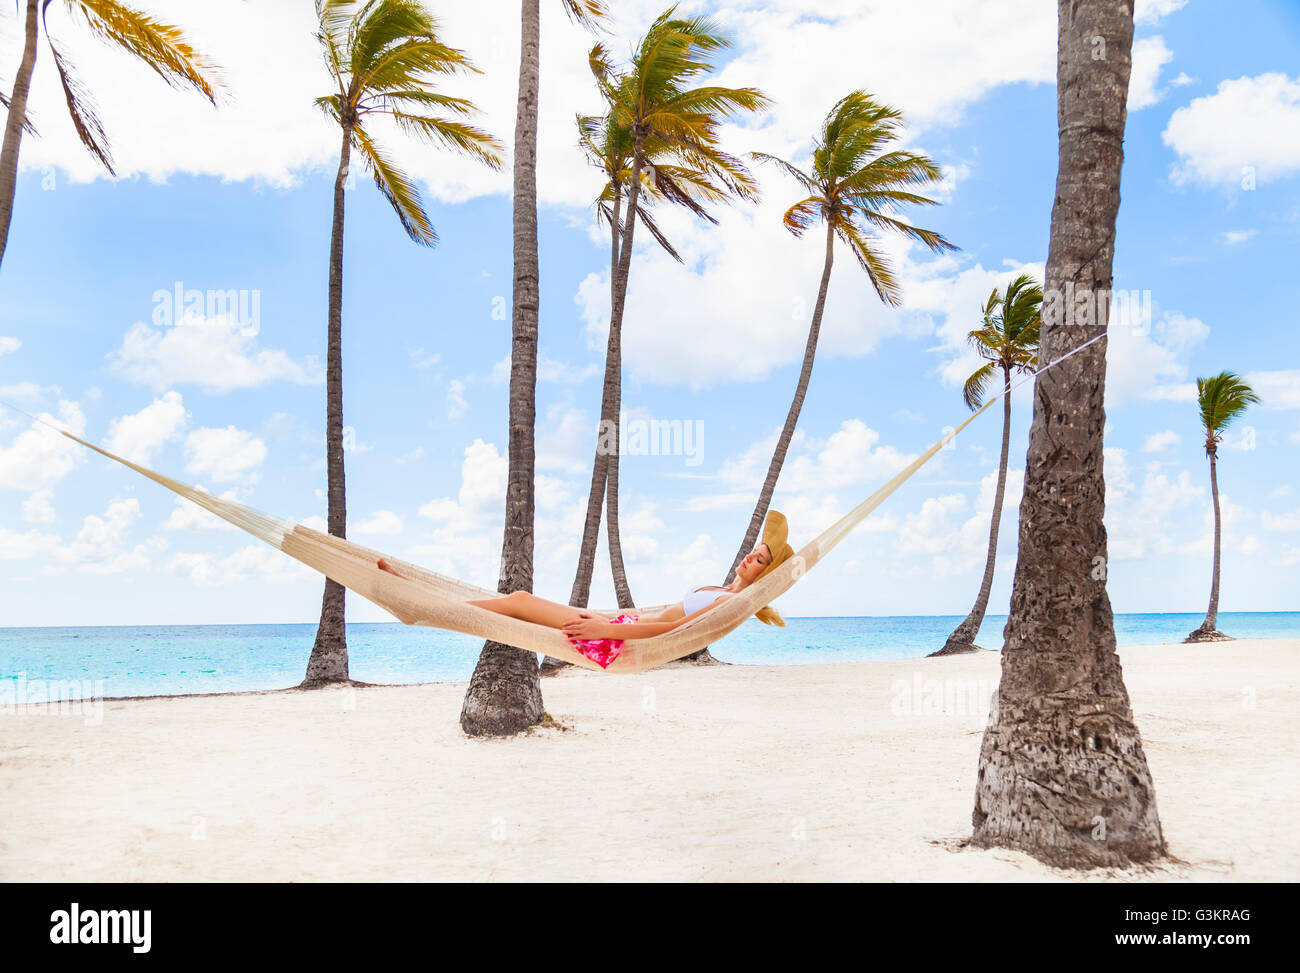 Young woman reclining in palm tree hammock at beach, Dominican Republic, The Caribbean - Stock Image